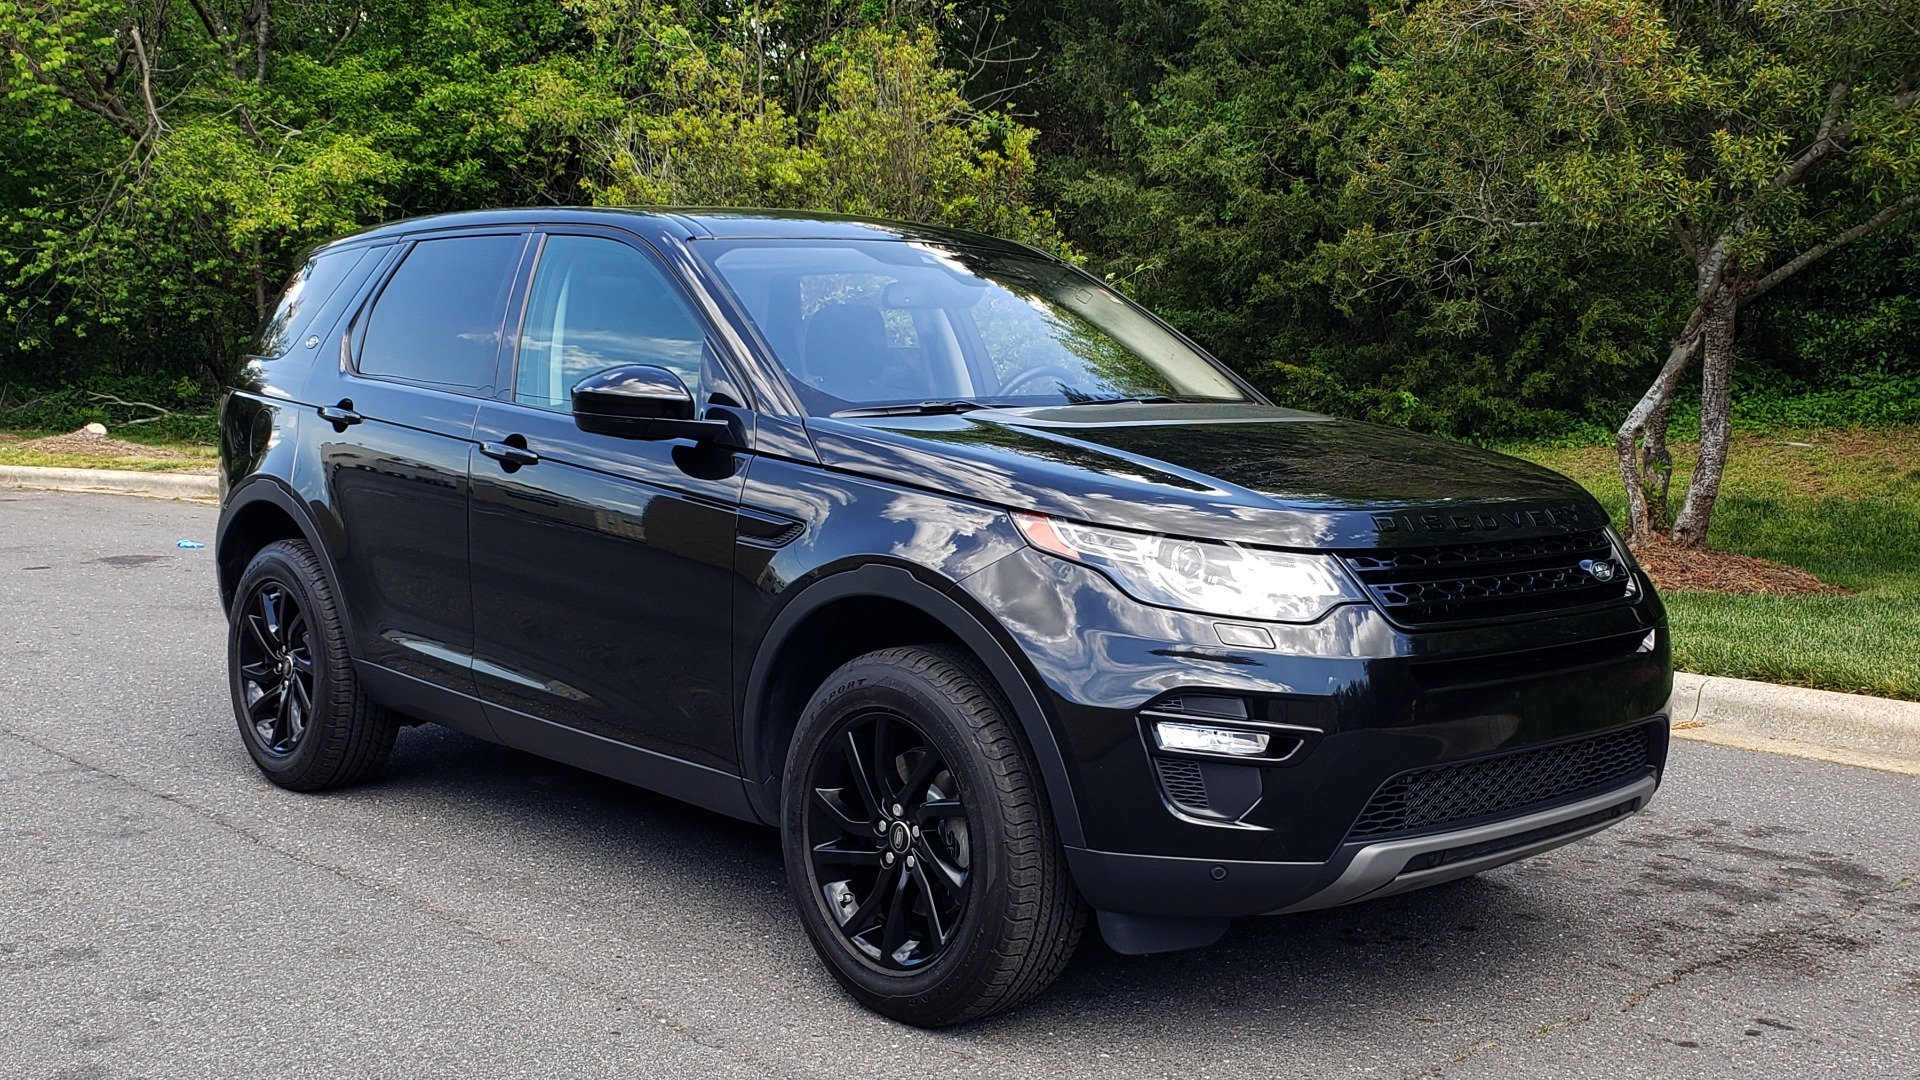 Used 2017 Land Rover DISCOVERY SPORT HSE / NAV / PANO-ROOF / REARVIEW / HTD STS / LANE DEPART for sale Sold at Formula Imports in Charlotte NC 28227 4